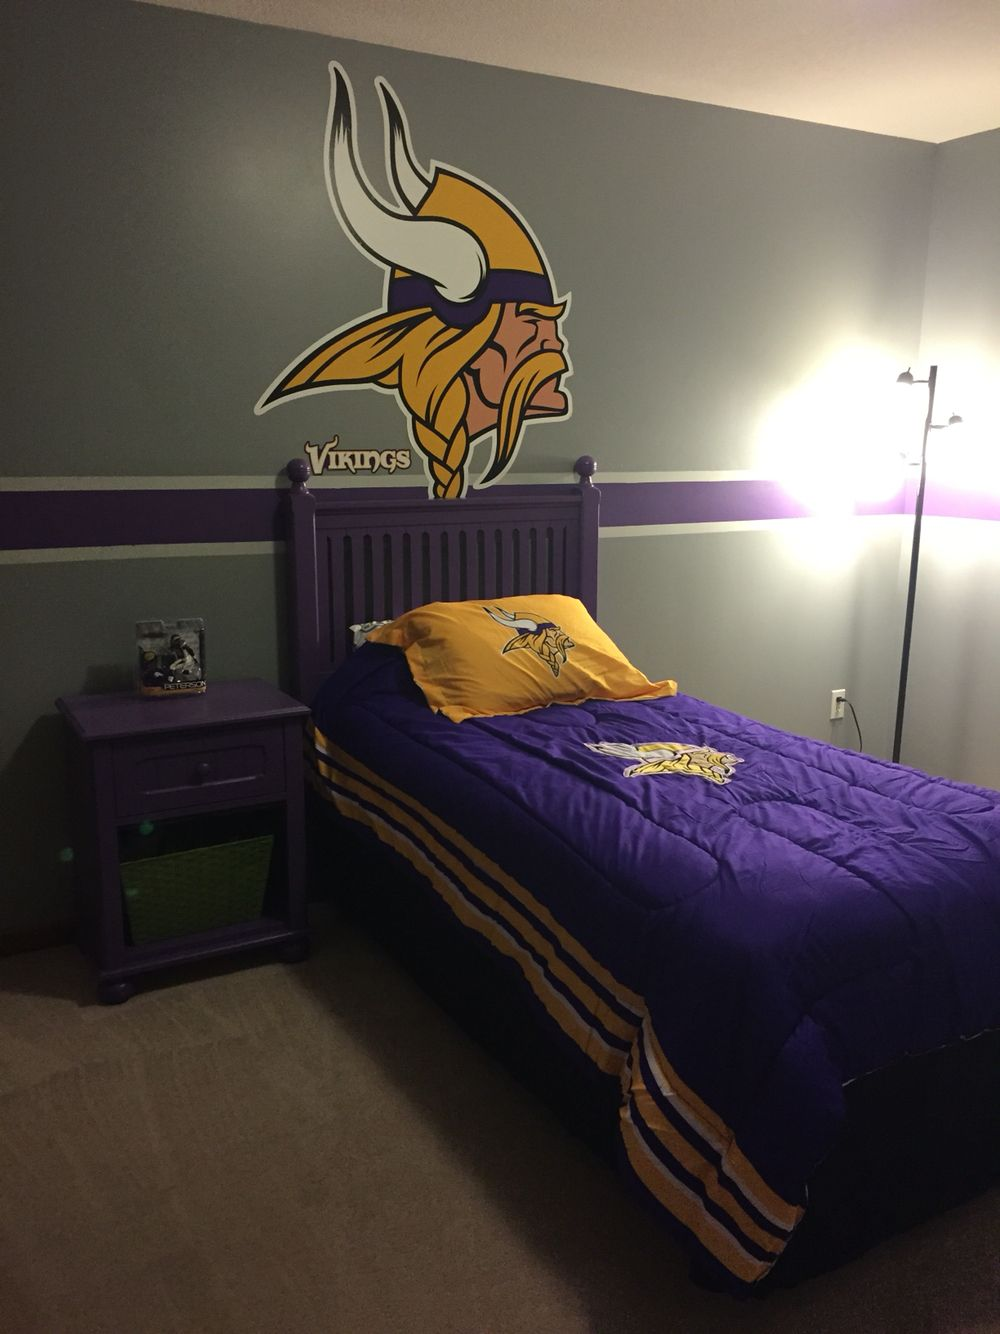 Viking Room Decor Home Decorating Ideas